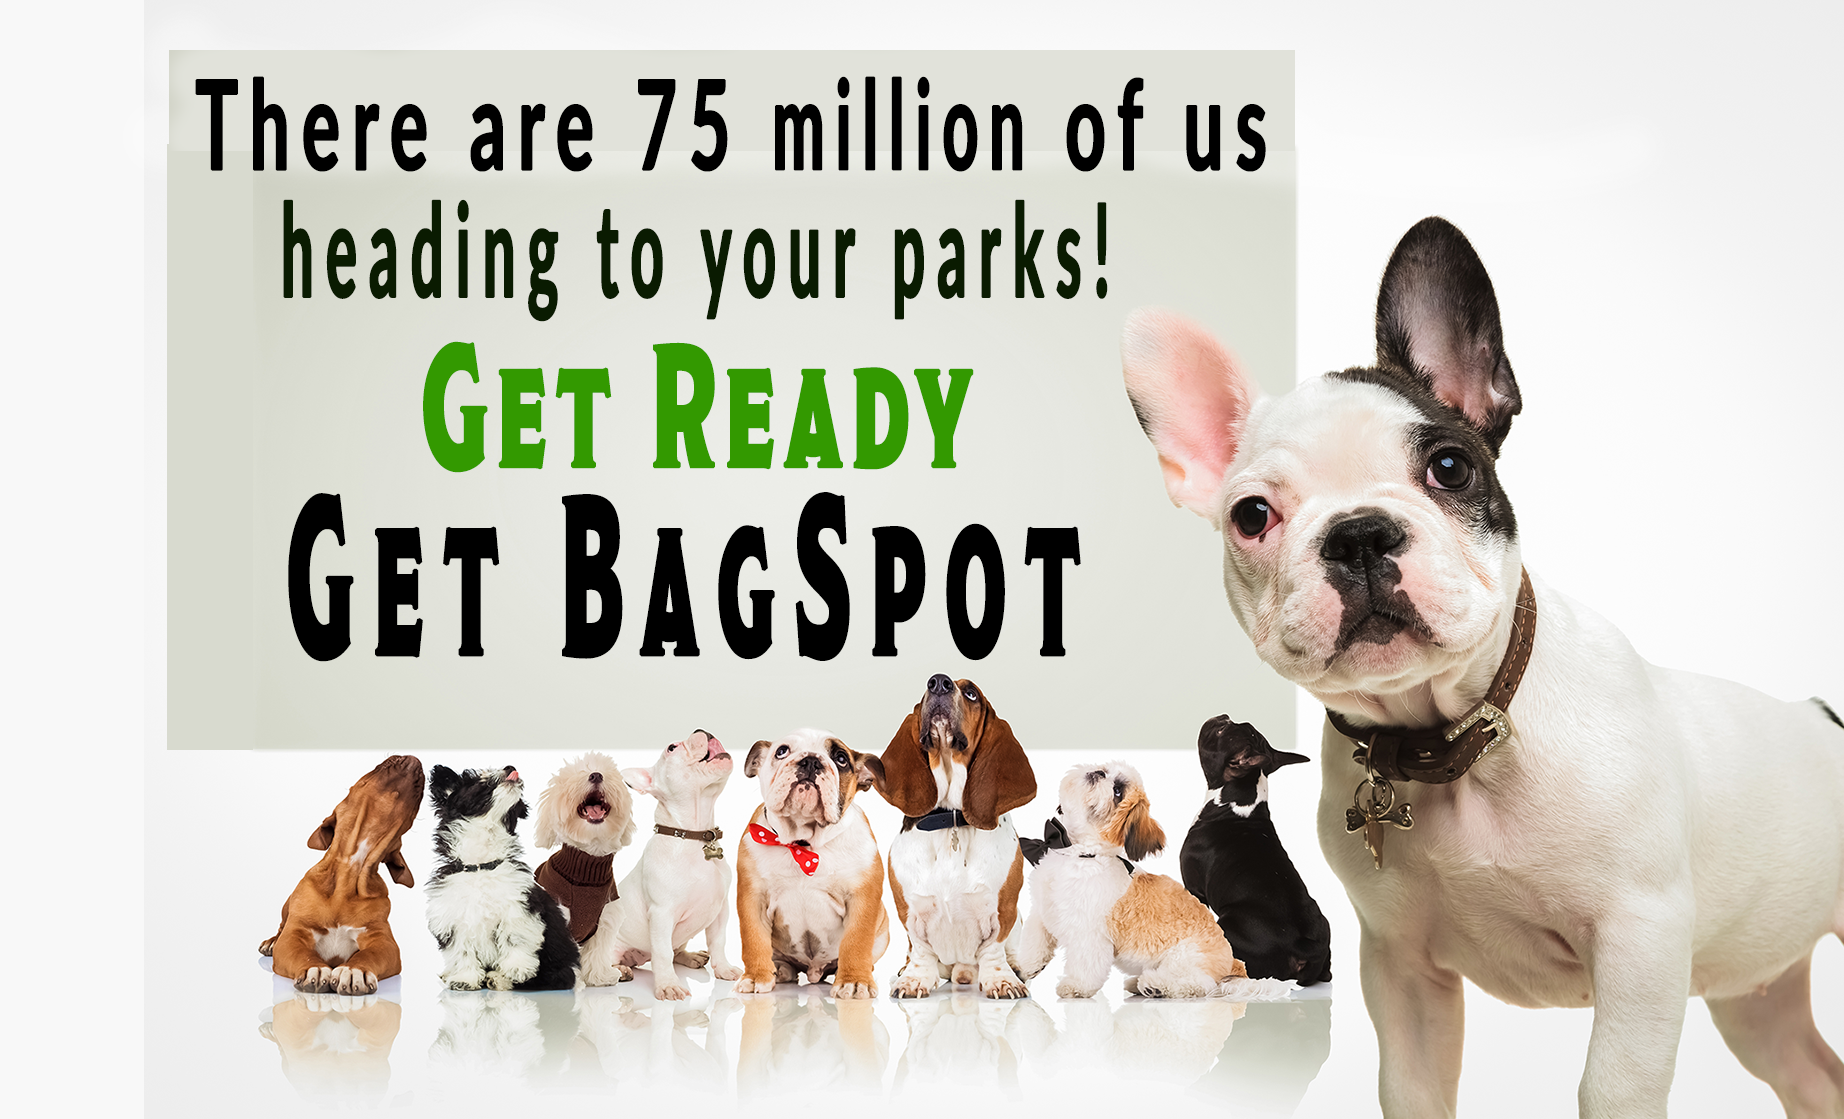 Get Ready-Get Bagspot-PNG 6-28-21